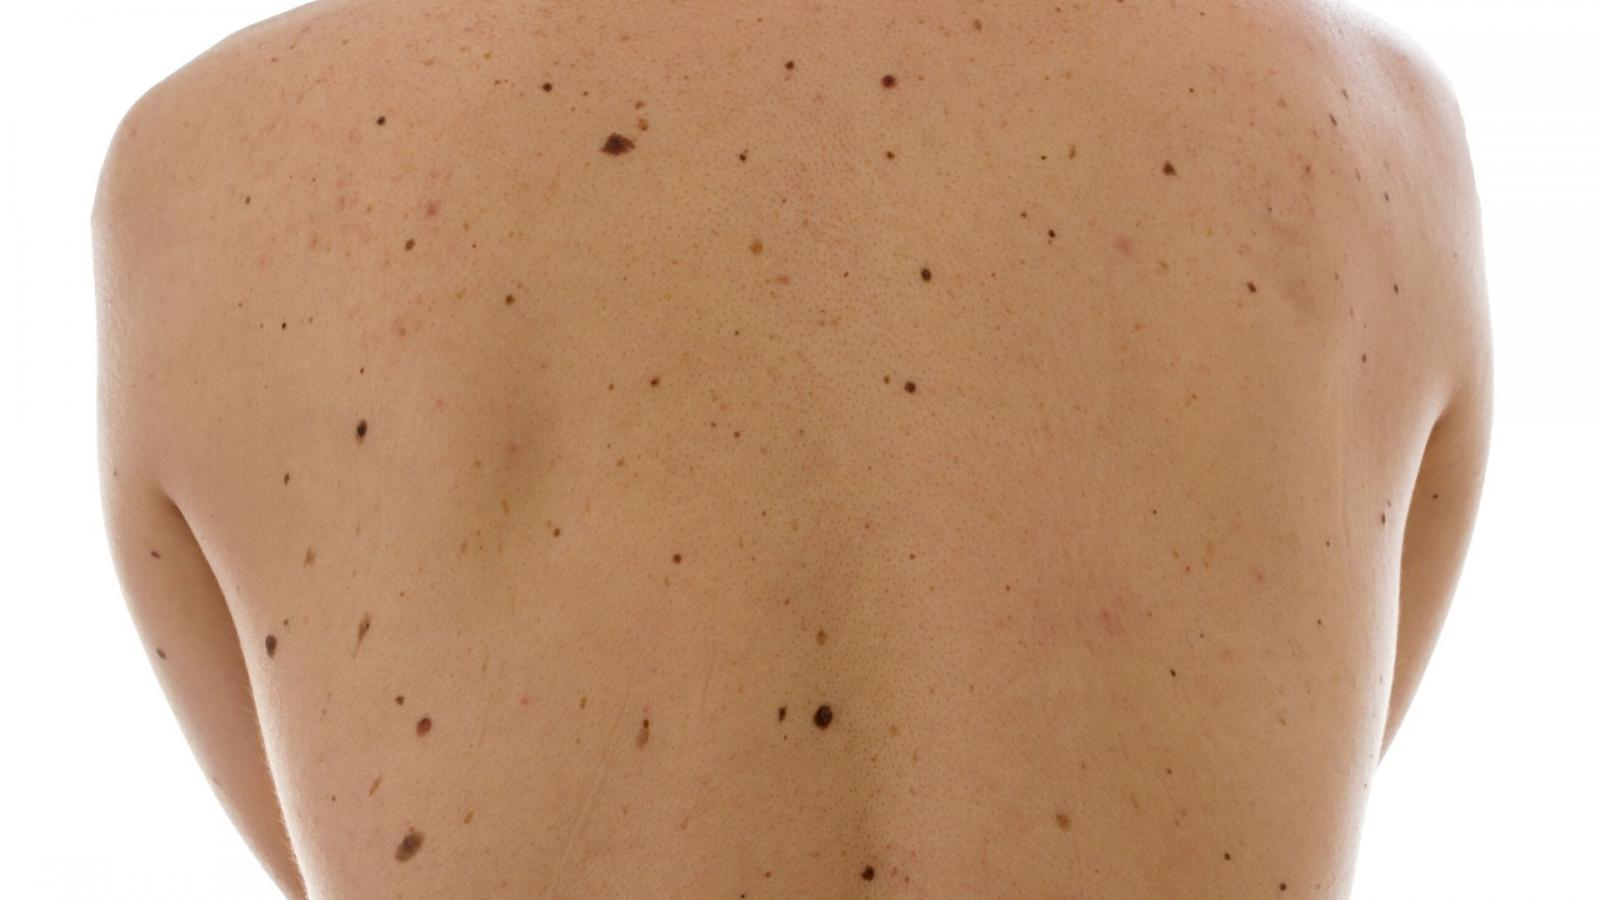 A person with a large number of moles